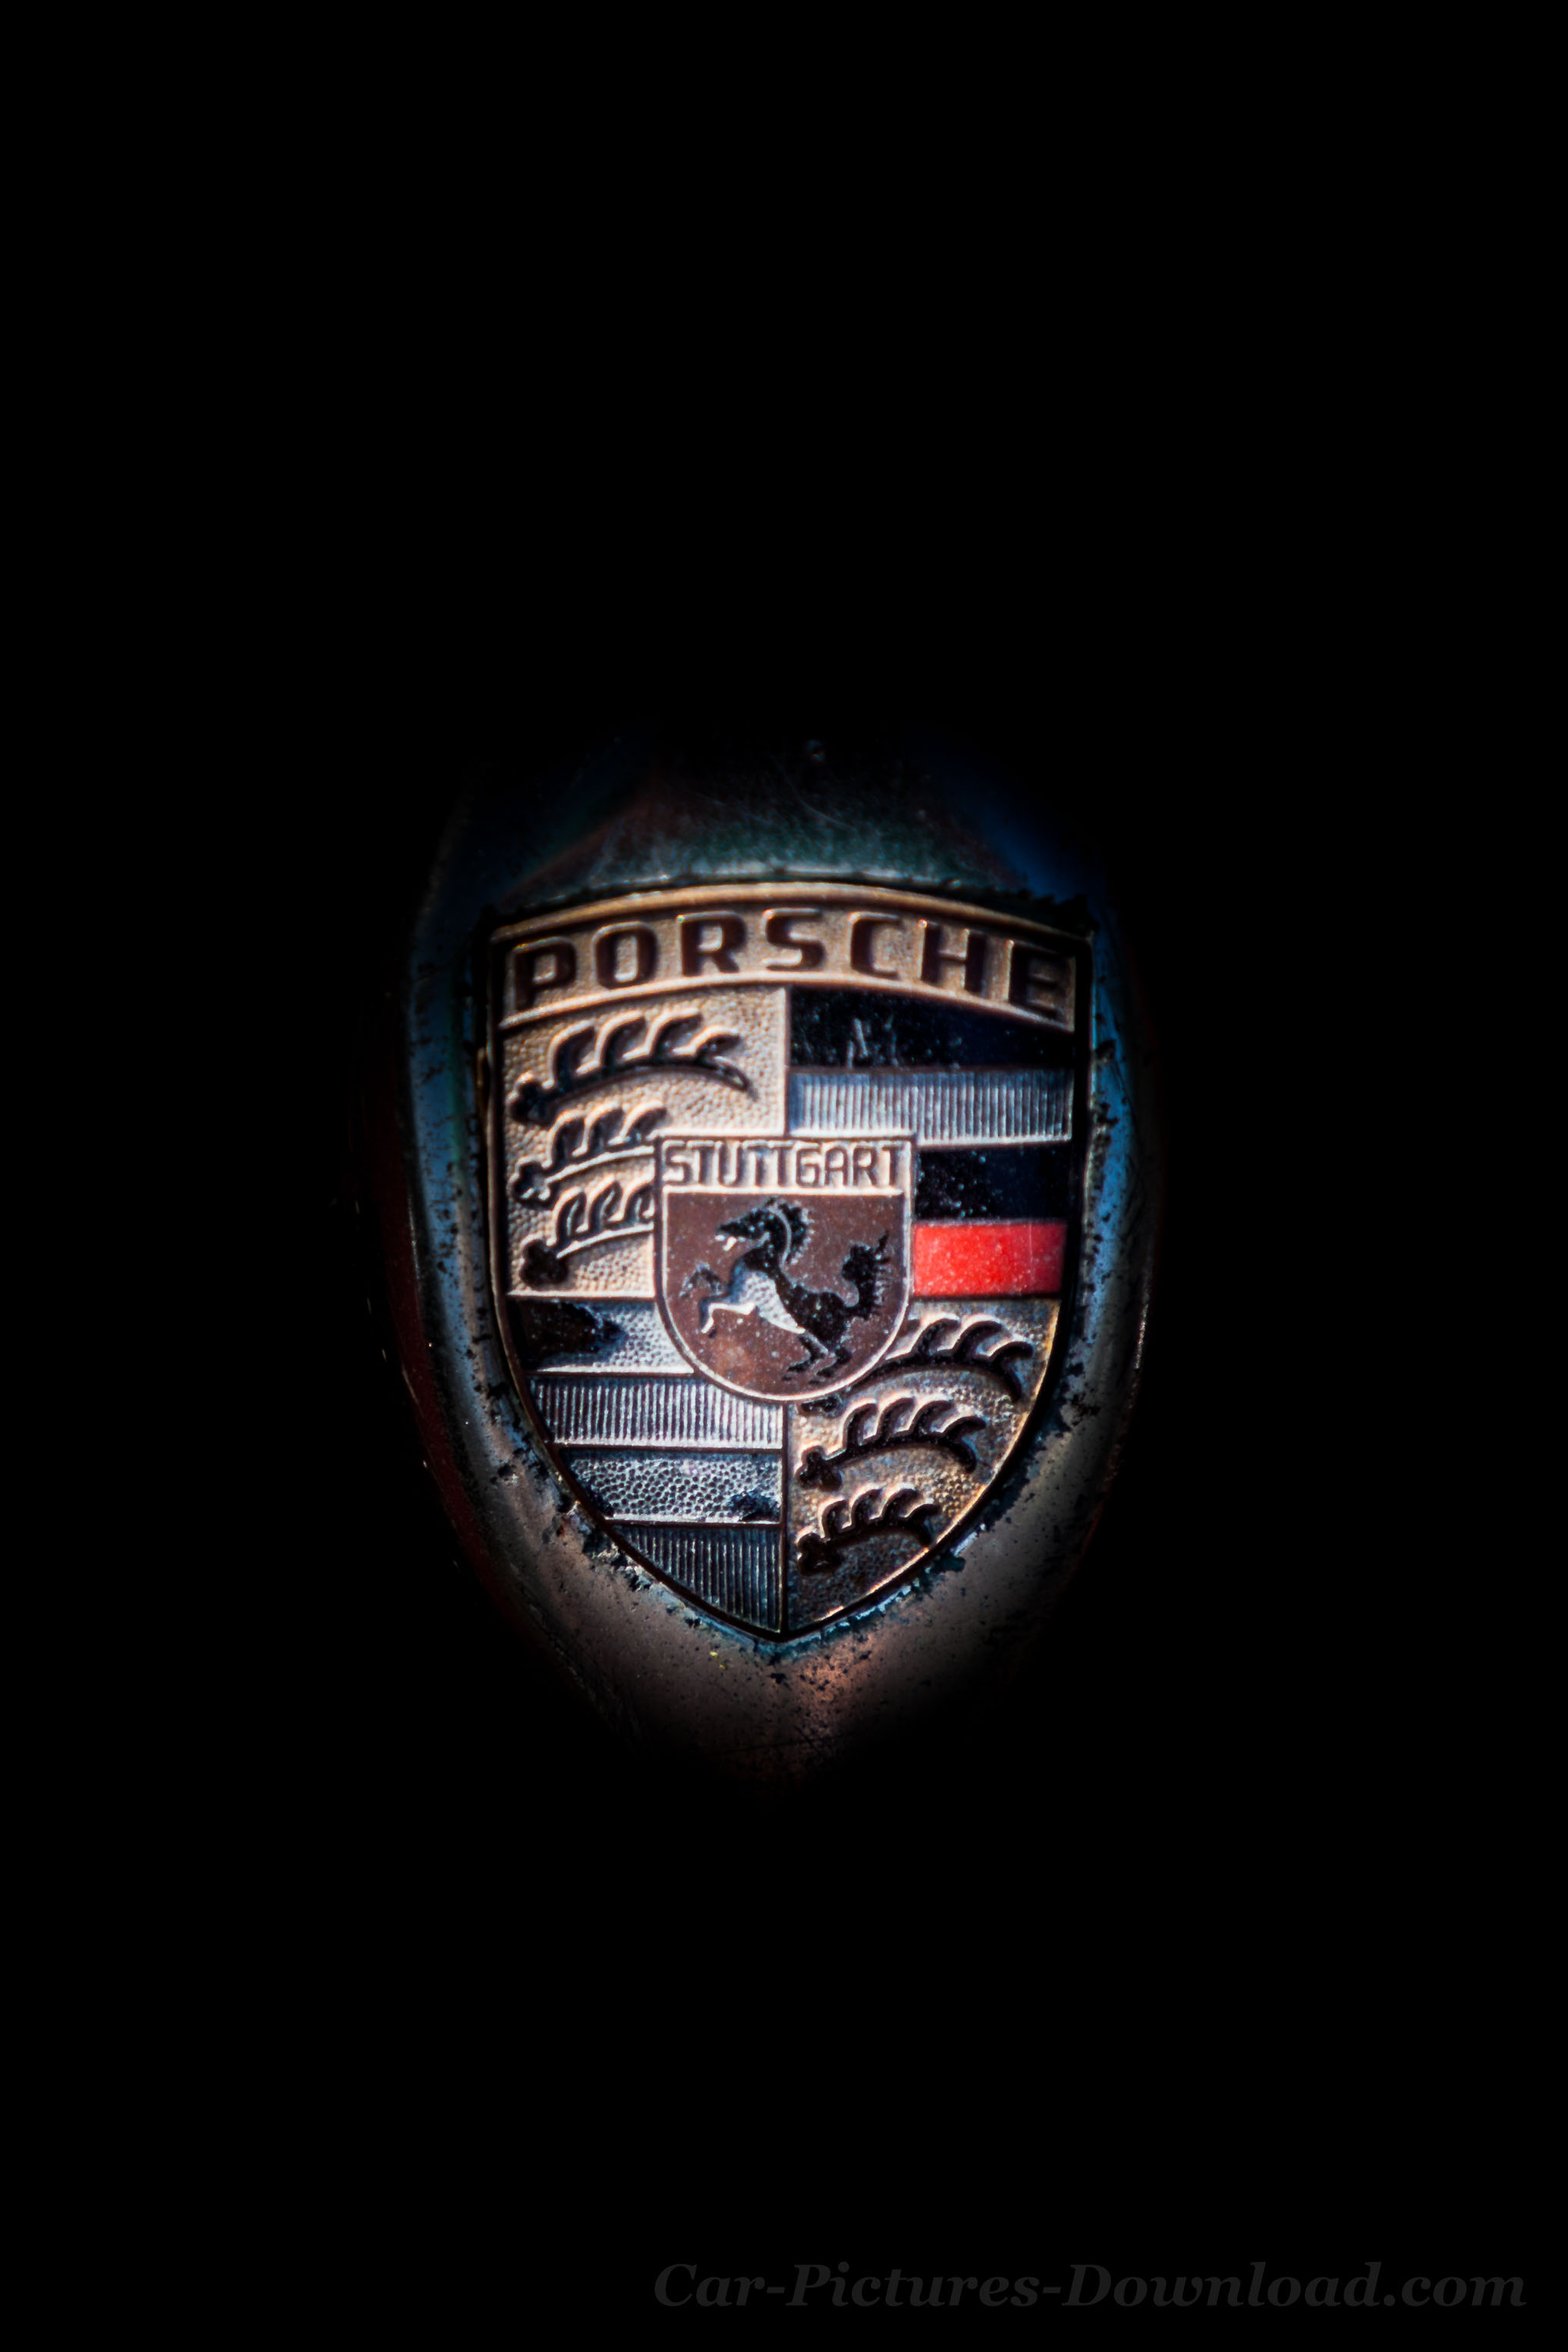 Porsche Wallpaper Iphone 6 Posted By Michelle Johnson